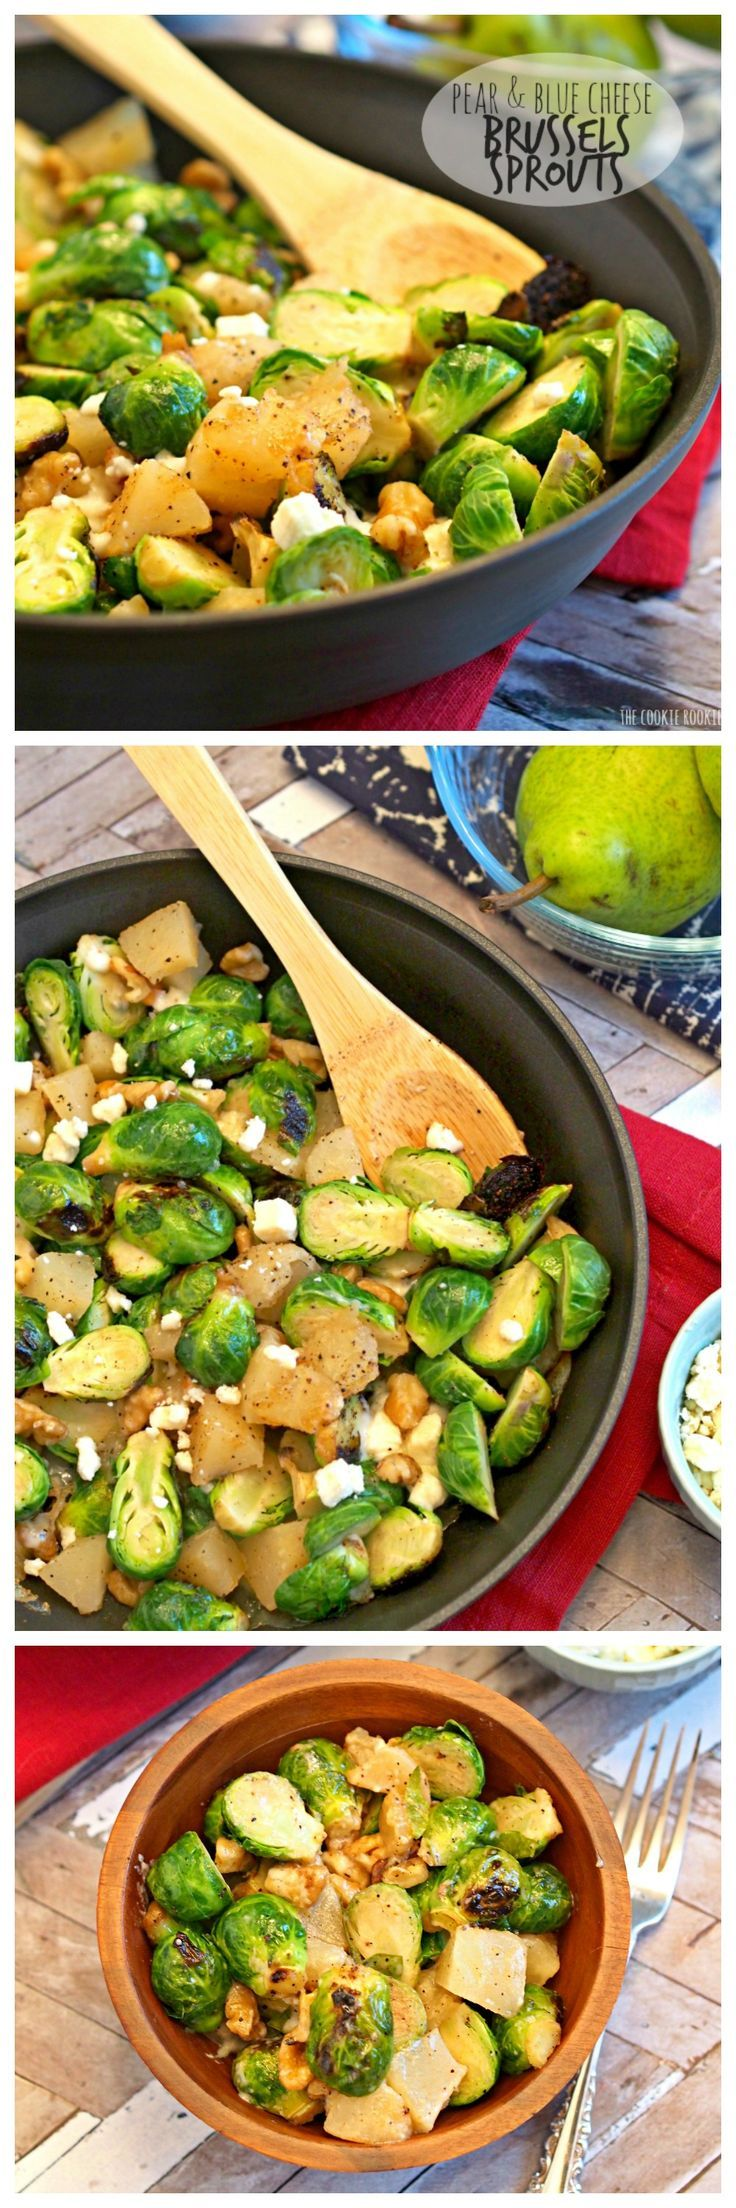 Pear and blue cheese roasted brussels sprouts recipe for Easy cold side dishes for christmas